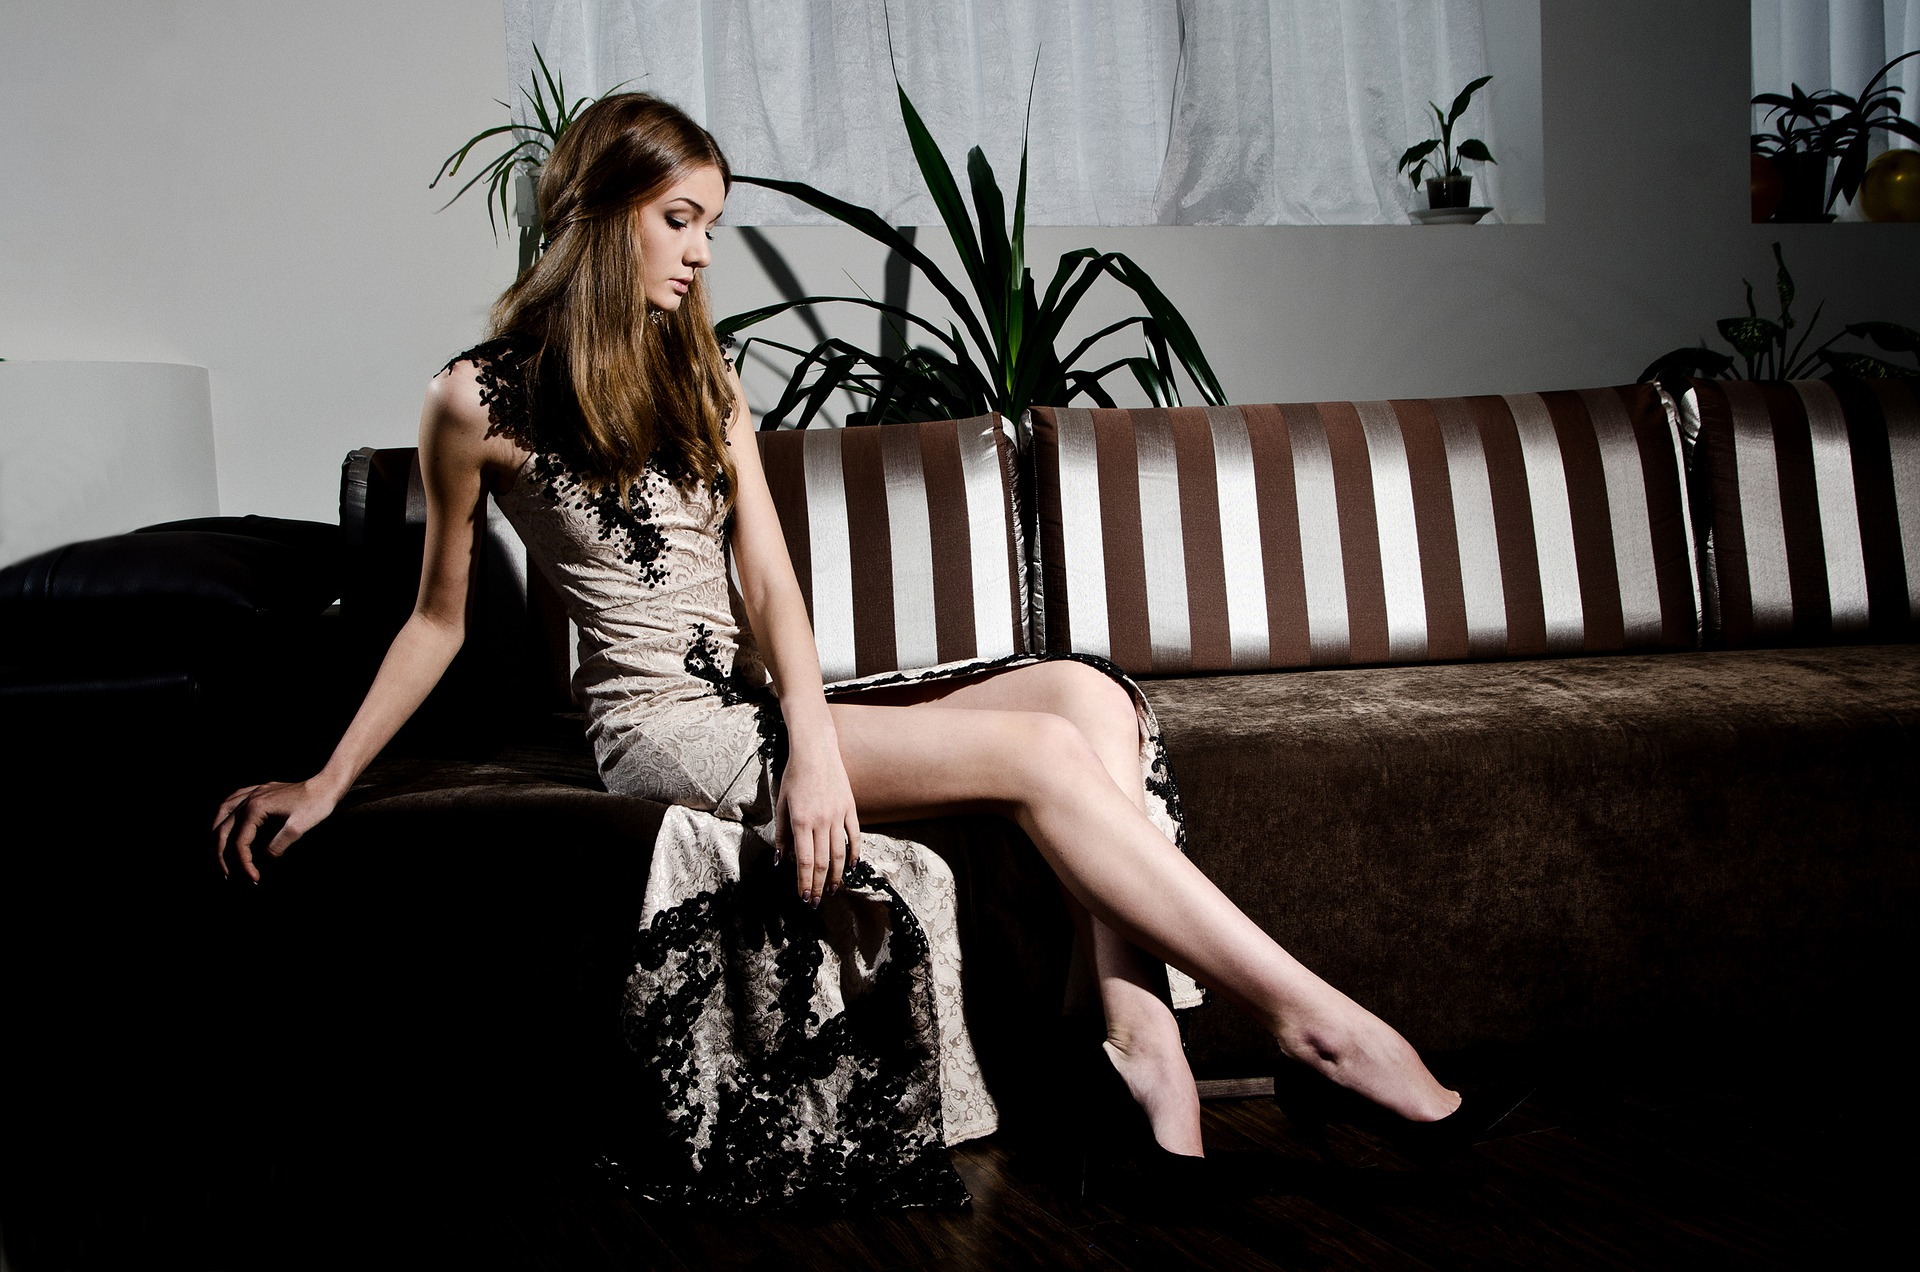 model sitting on chair